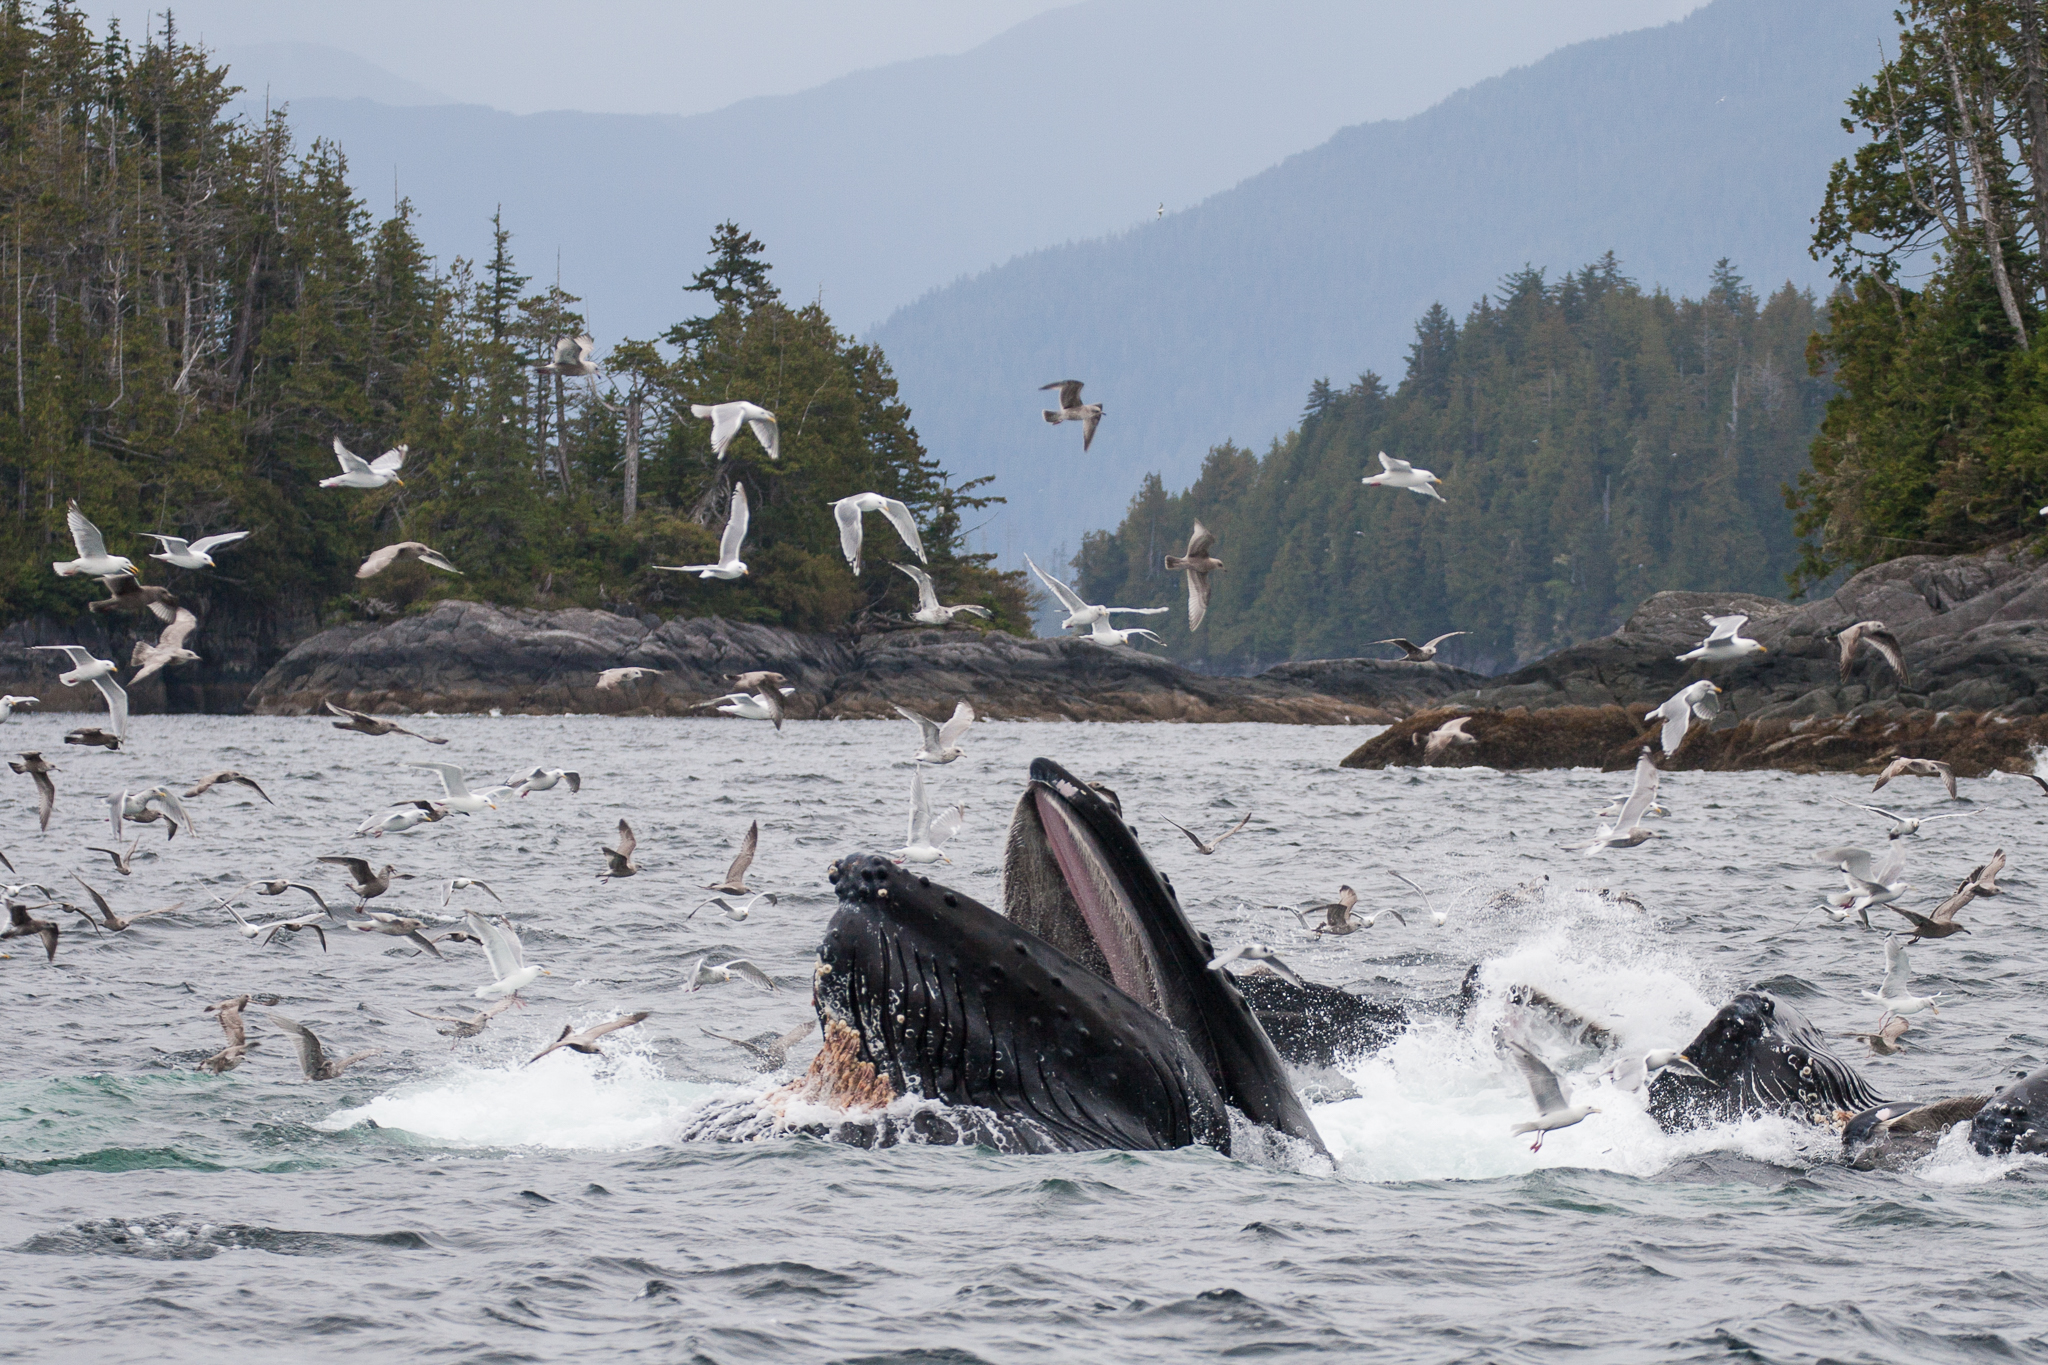 Humpback whales break the surface in a spectacular display of cooperative hunting.